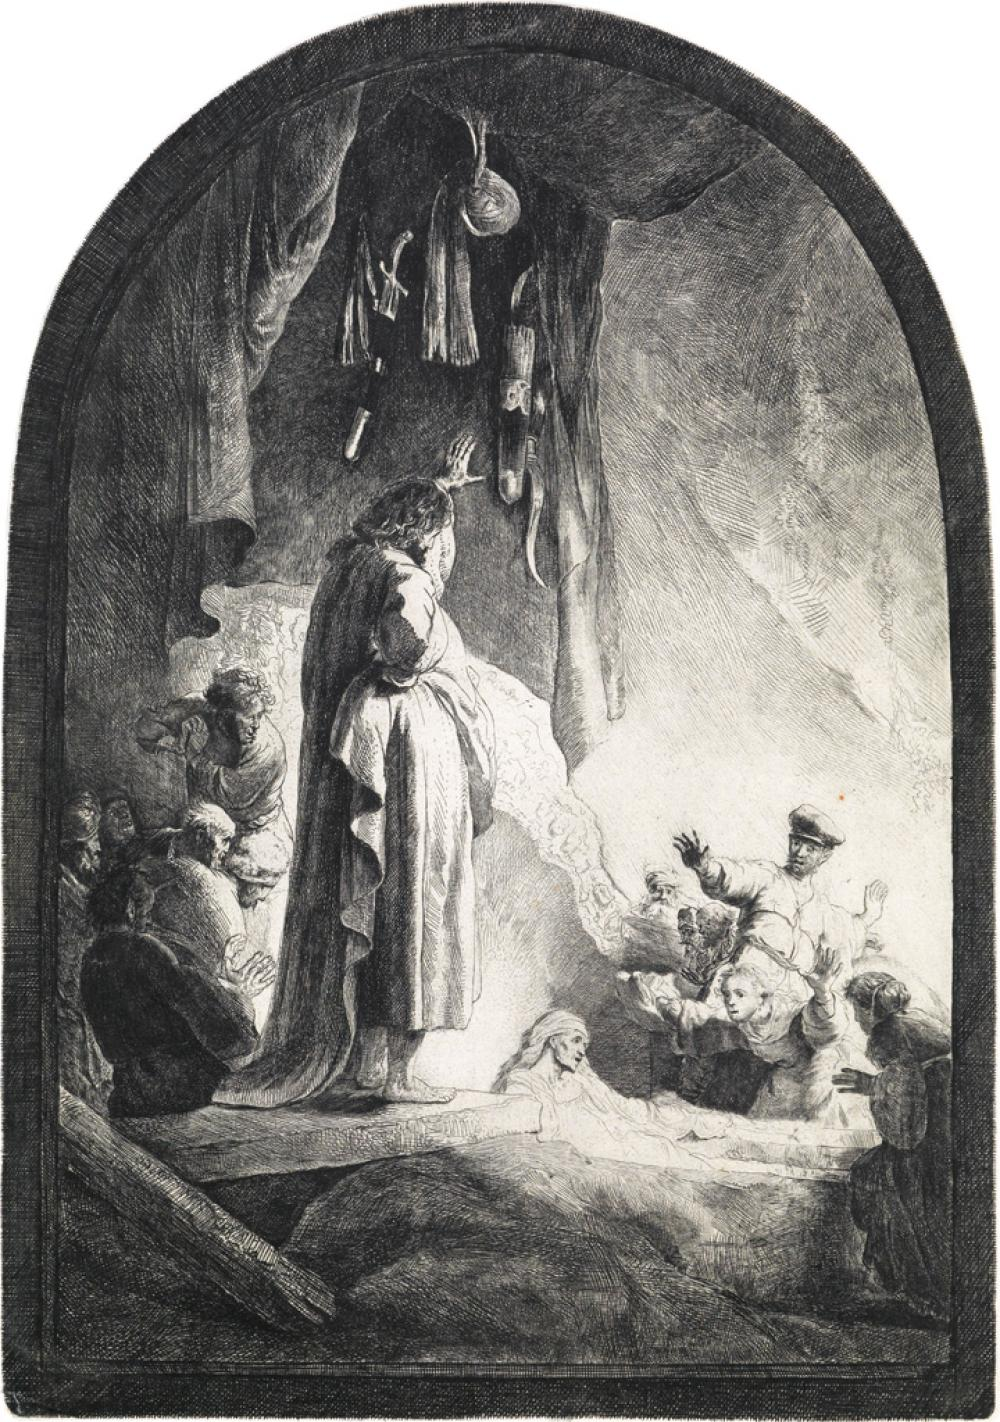 REMBRANDT VAN RIJN The Raising of Lazarus: The Larger Plate.